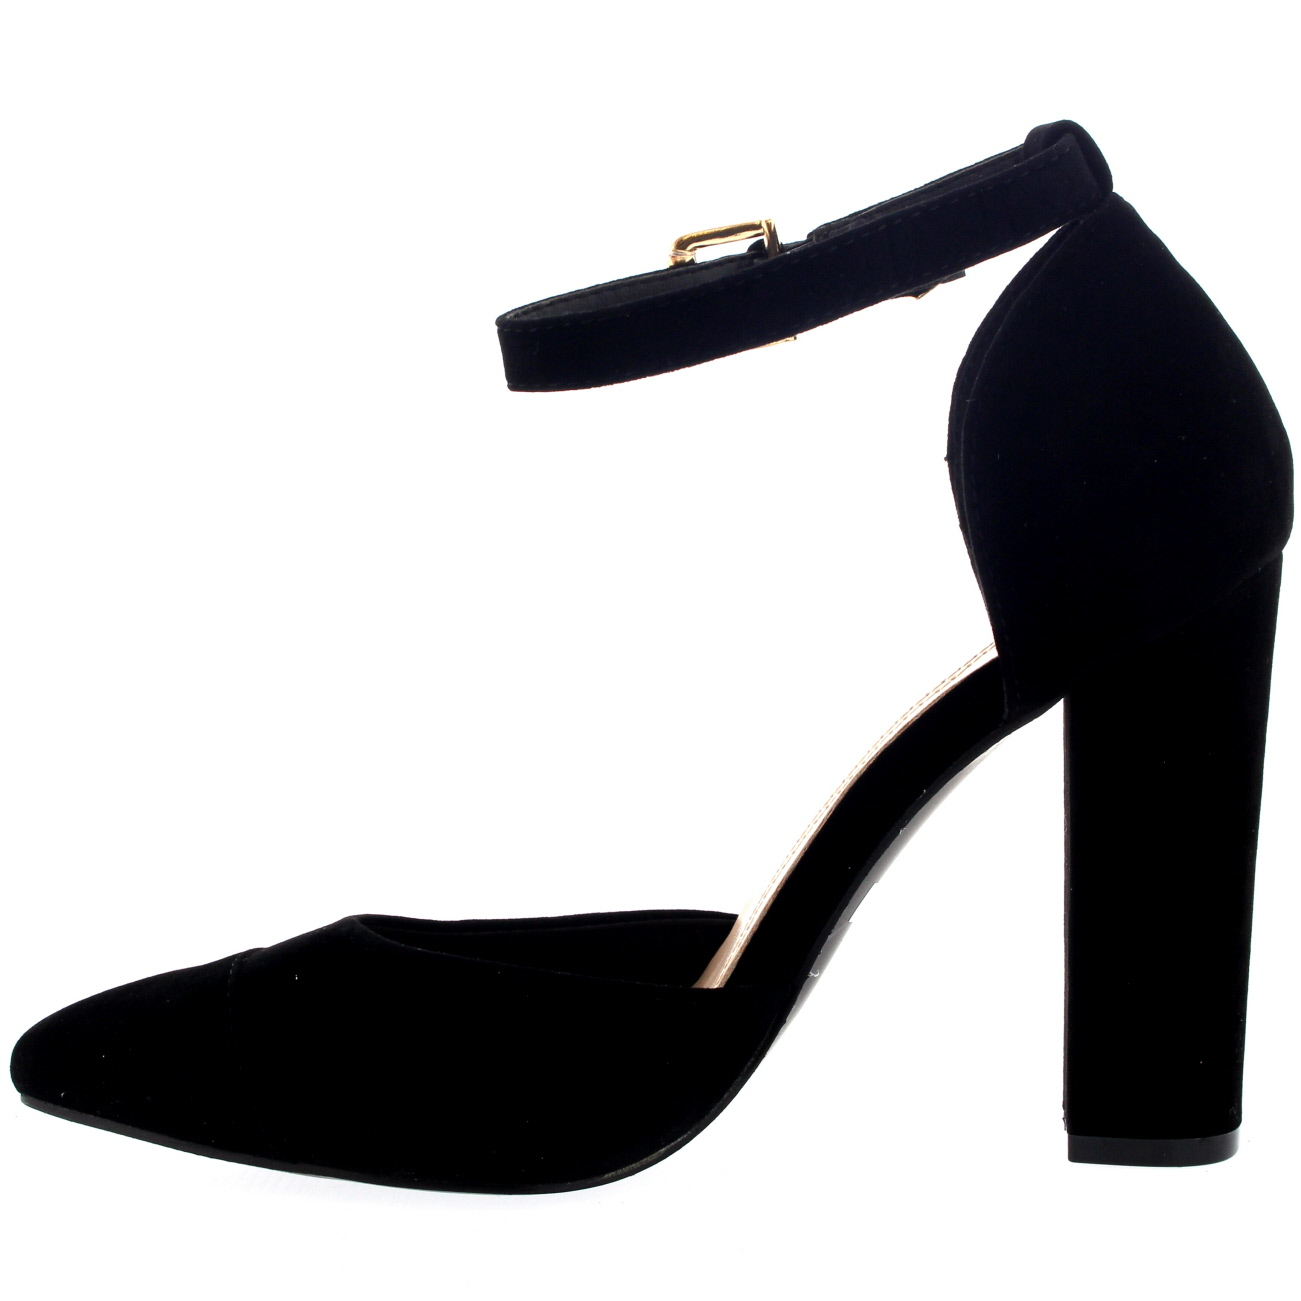 695dbadb28c19 Womens Pointed Toe Office Shoes Block Heel Ankle Strap High Heel ...